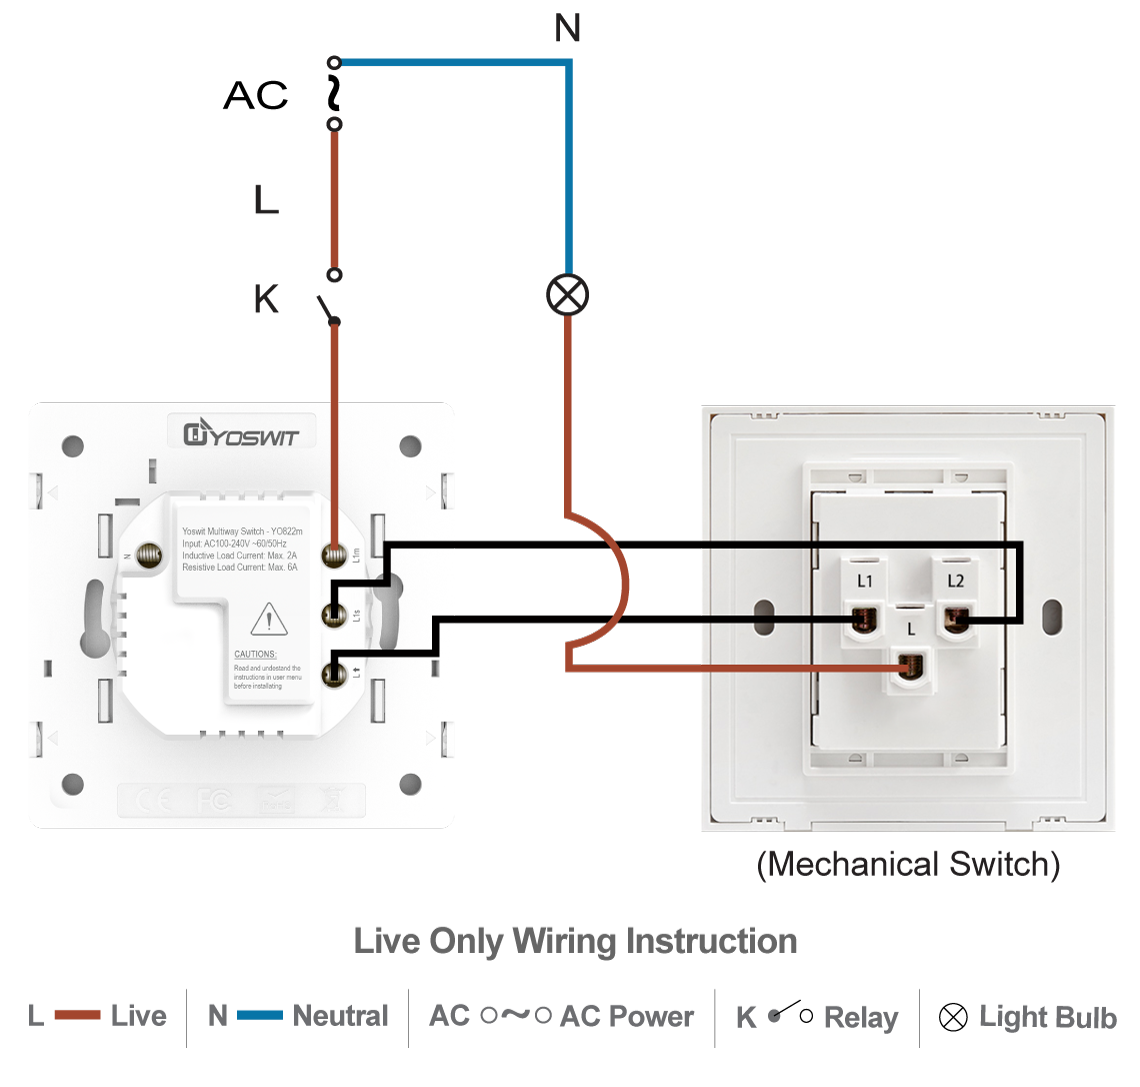 Wiring 3 Way Switch With 2 Wires